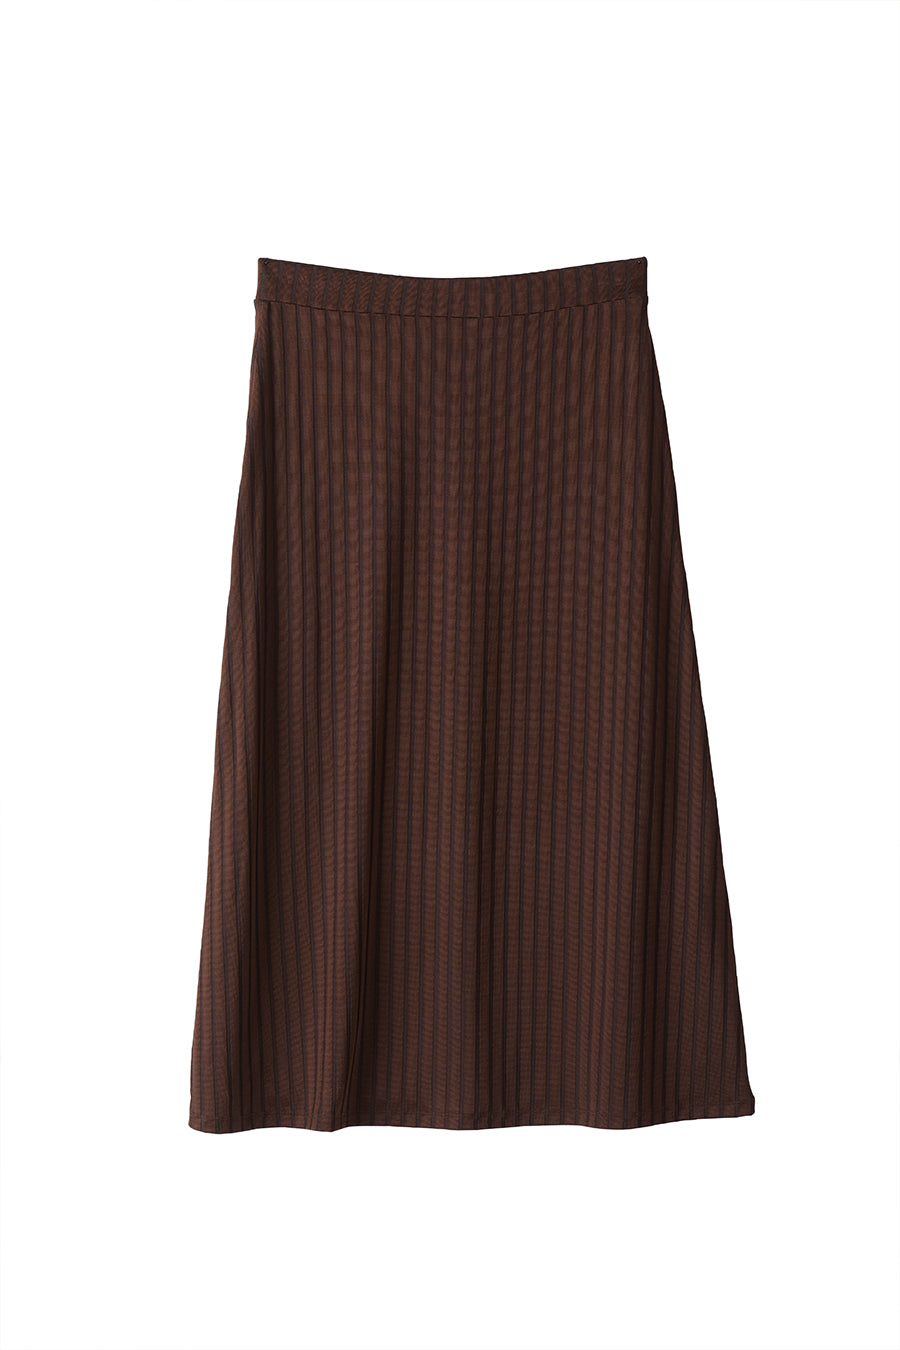 PHILLY SKIRT - DARK BROWN